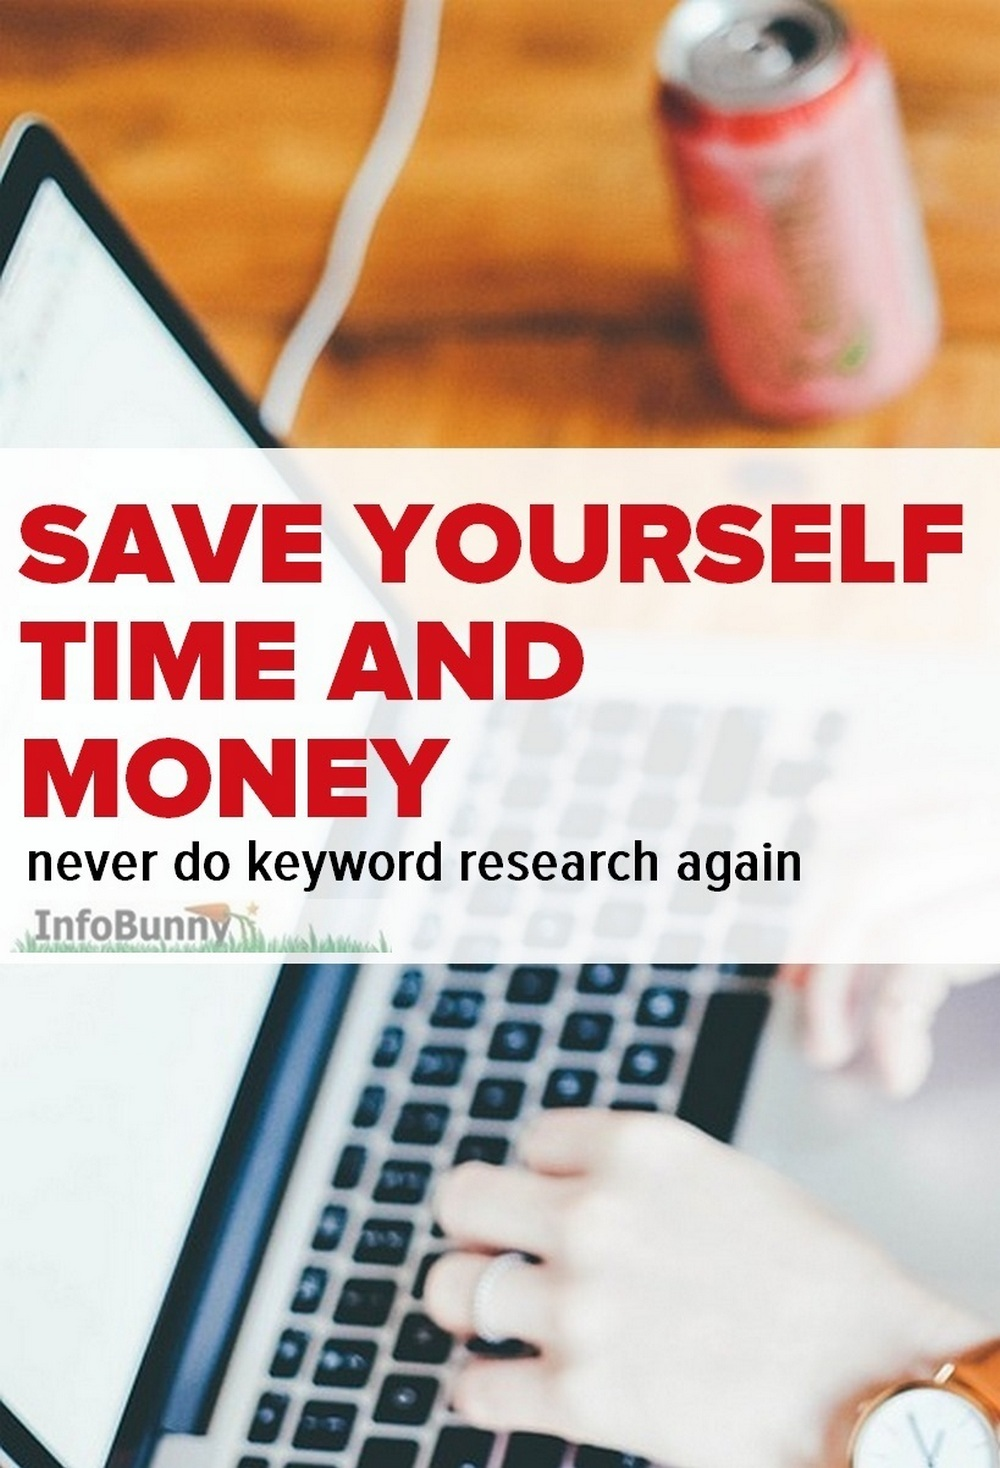 Never do keyword research again, do this instead.